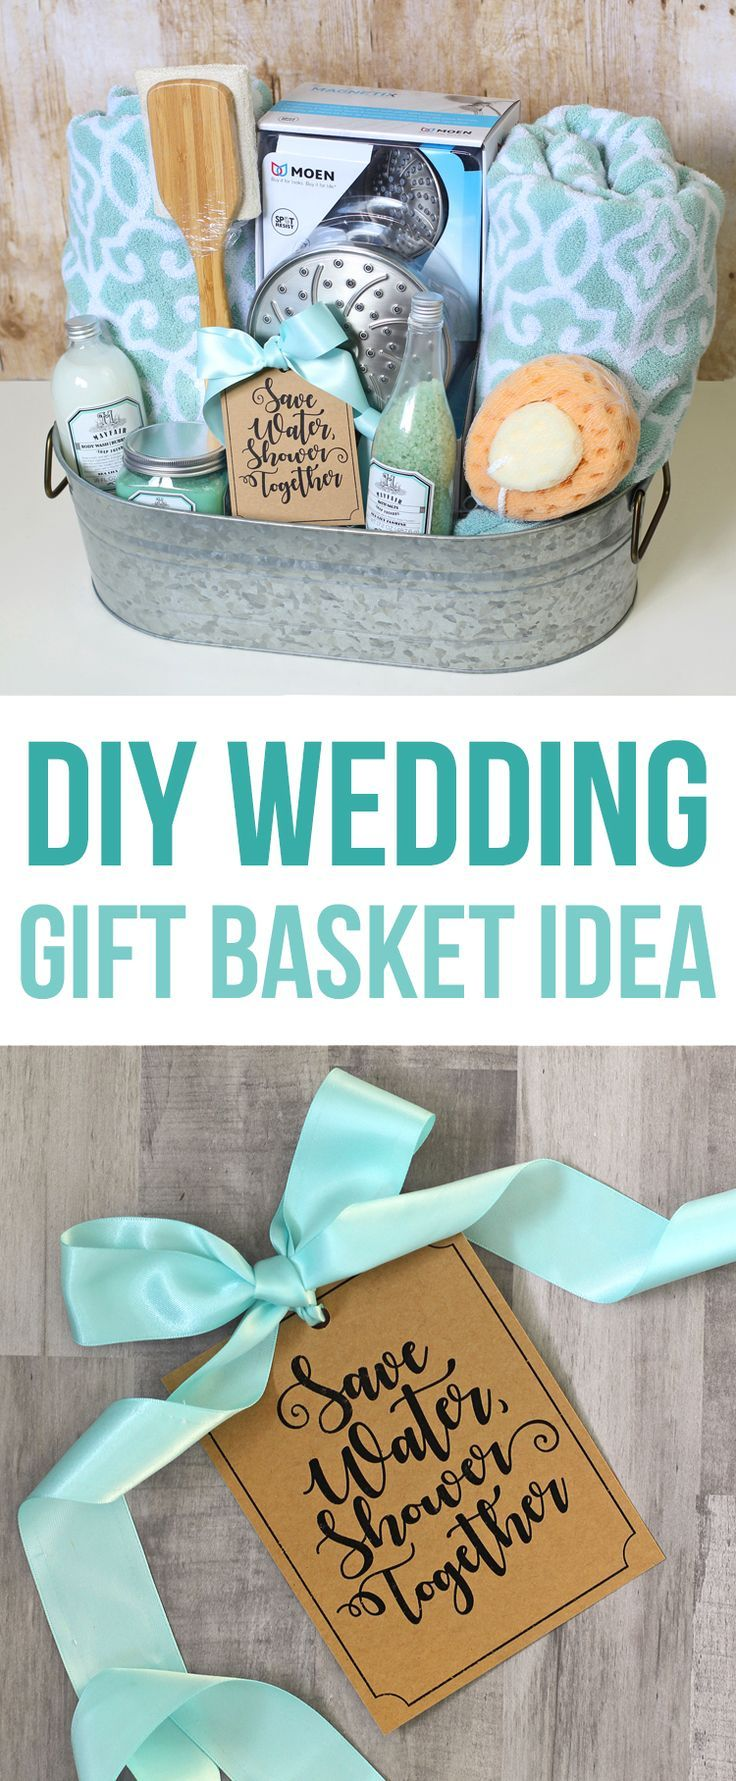 Unique Bridal Shower Gifts Diy : best ideas about Wedding gifts on Pinterest Creative wedding gifts ...